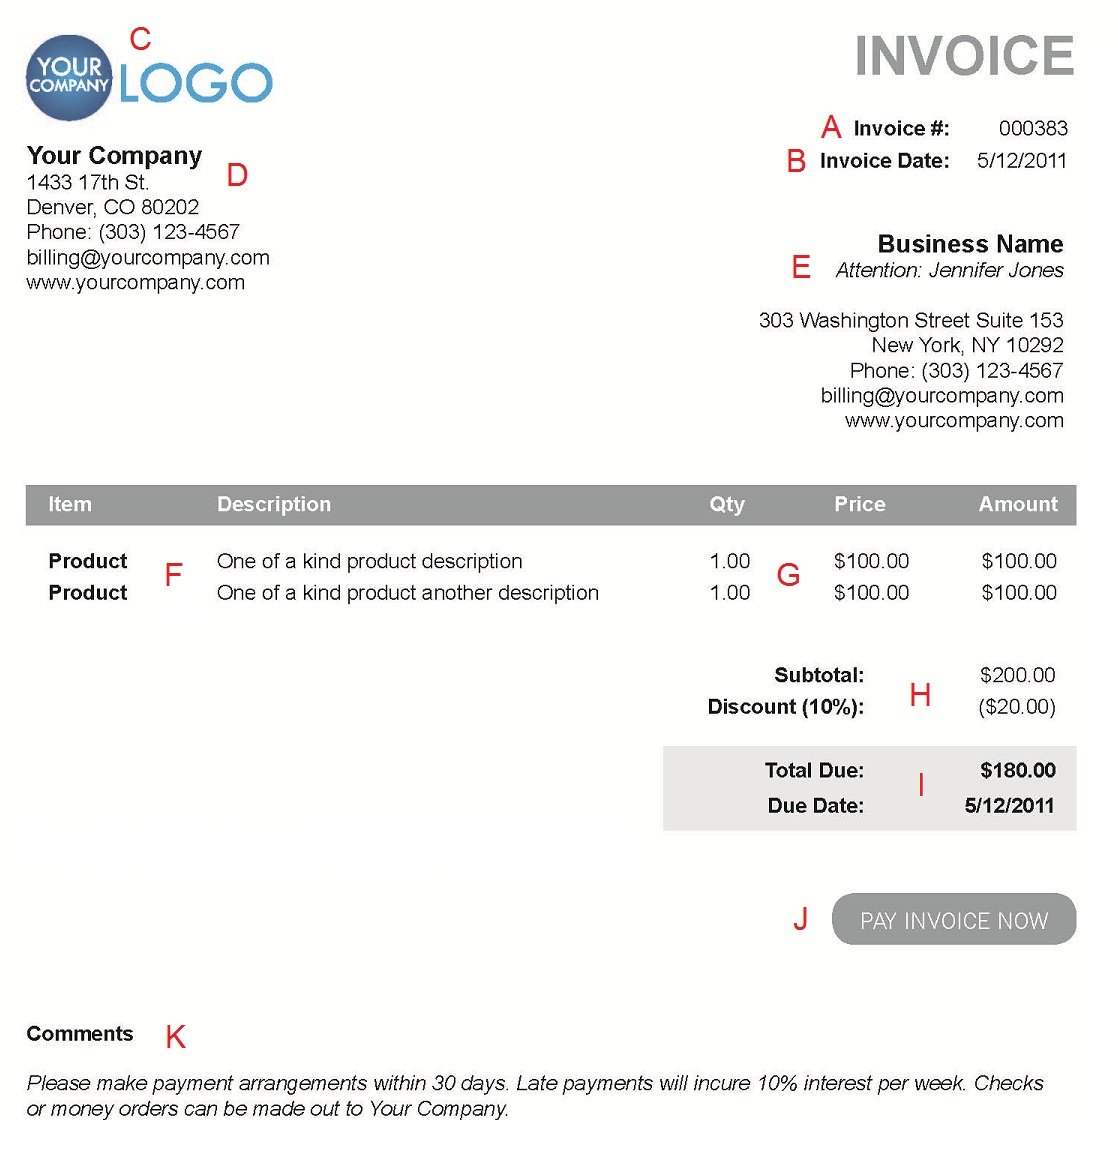 Ultrablogus  Splendid The  Different Sections Of An Electronic Payment Invoice With Heavenly A  With Beautiful Automotive Invoicing Software Also  Toyota Camry Invoice Price In Addition What Is The Best Invoice Software And Net Invoice As Well As Export Invoices From Quickbooks Additionally Invoice Online Template From Paysimplecom With Ultrablogus  Heavenly The  Different Sections Of An Electronic Payment Invoice With Beautiful A  And Splendid Automotive Invoicing Software Also  Toyota Camry Invoice Price In Addition What Is The Best Invoice Software From Paysimplecom